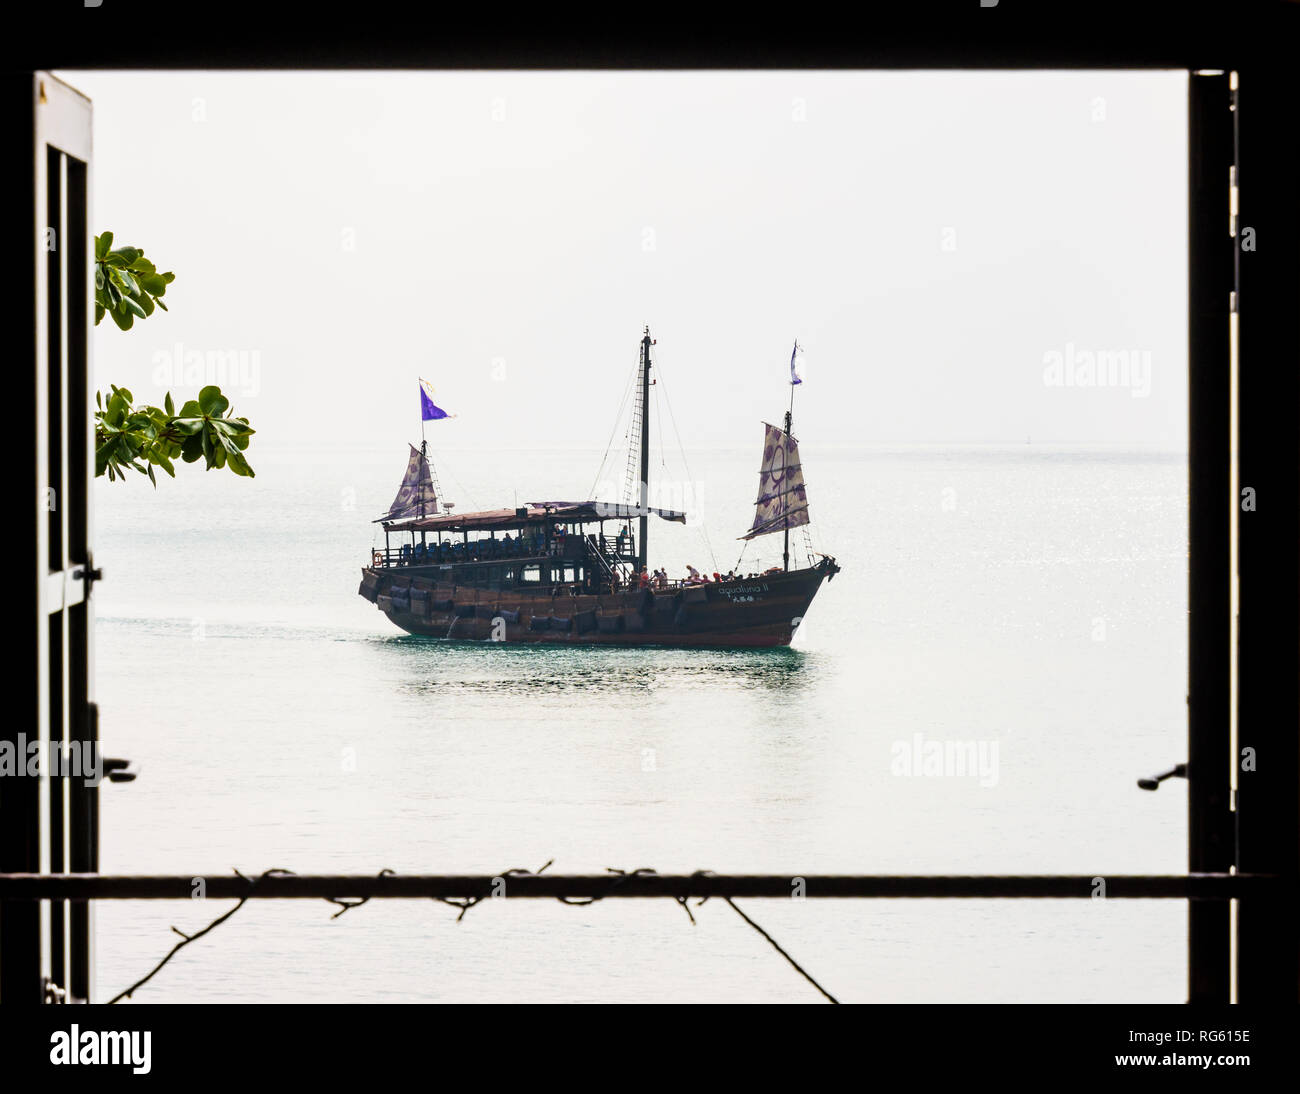 Framed view of a hazy day arrival of the Aqua Luna II junk in Stanley Bay, Hong Kong - Stock Image